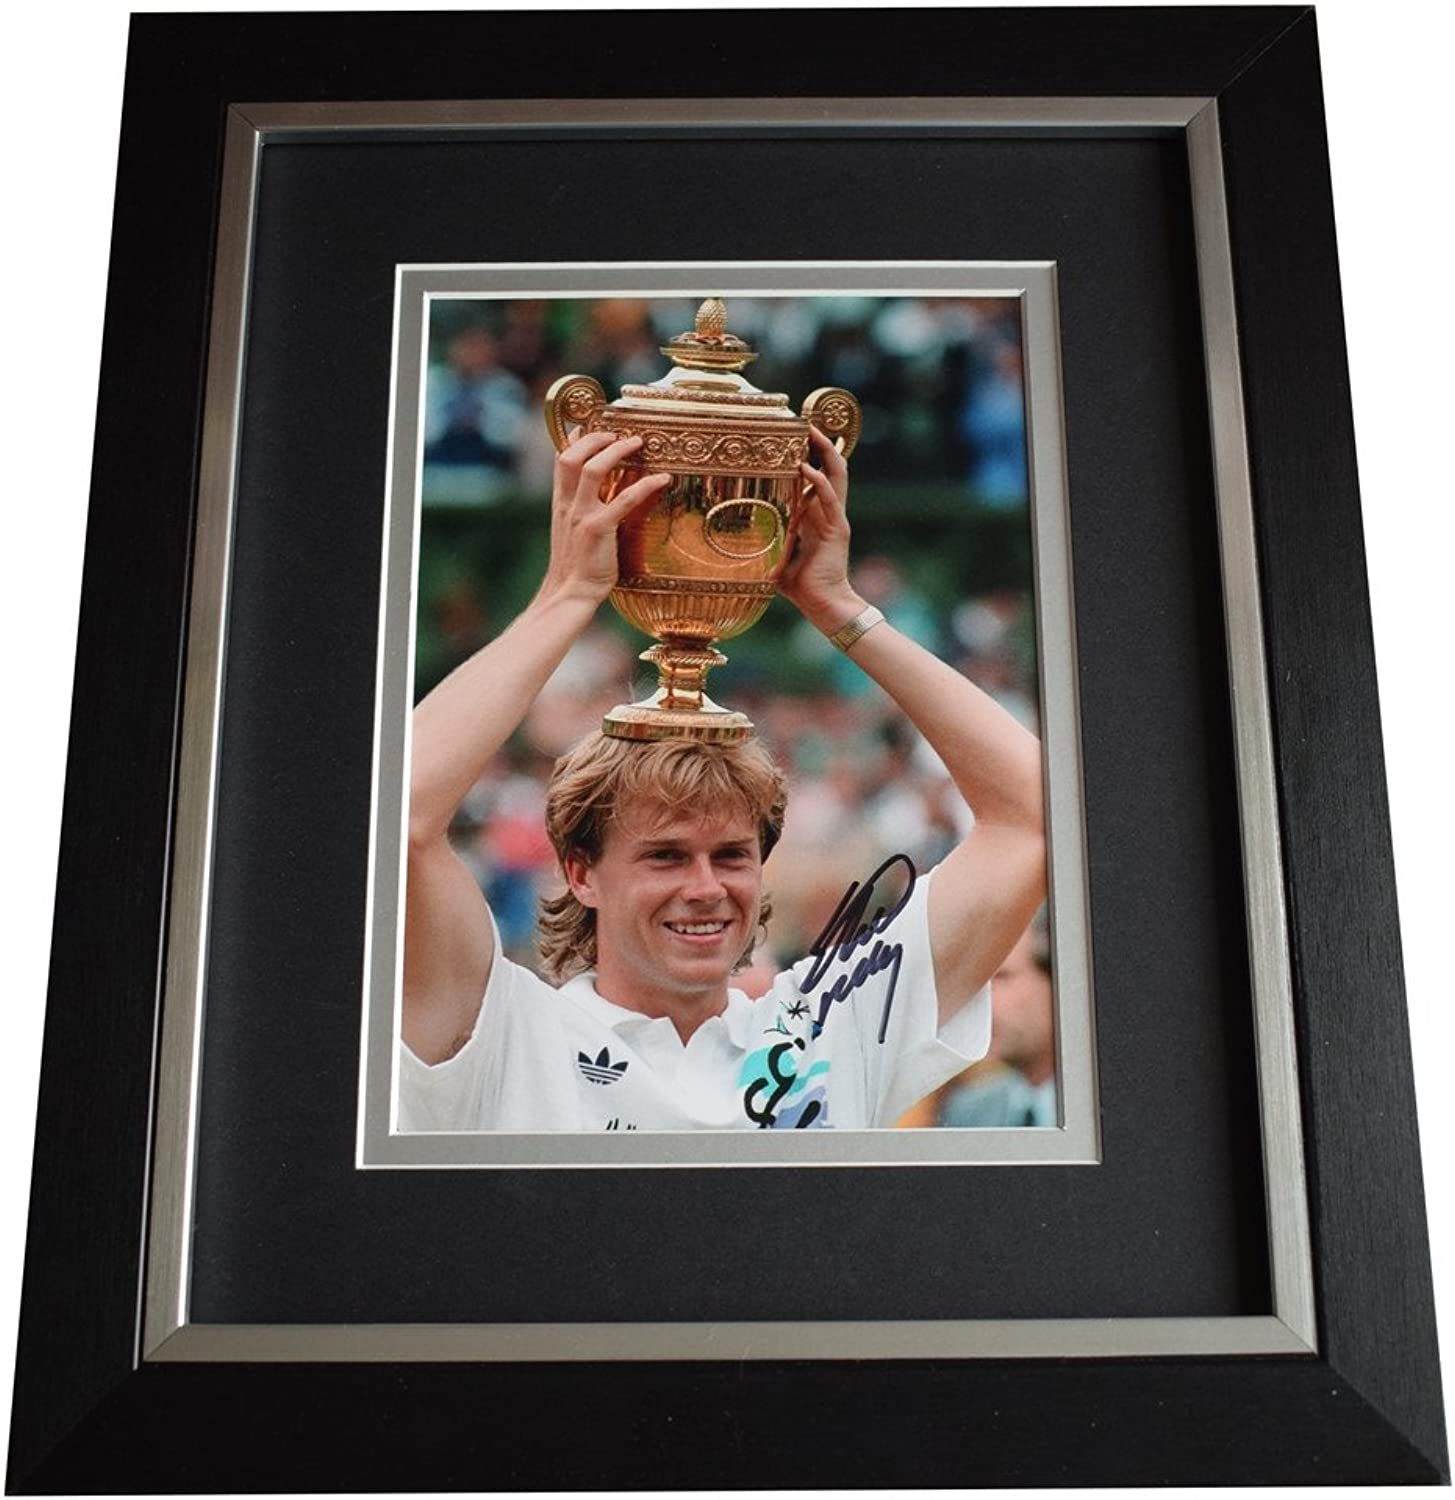 Sportagraphs Stefan Edberg SIGNED 10x8 FRAMED Photo Autograph Display Tennis Sport AFTAL COA PERFECT GIFT